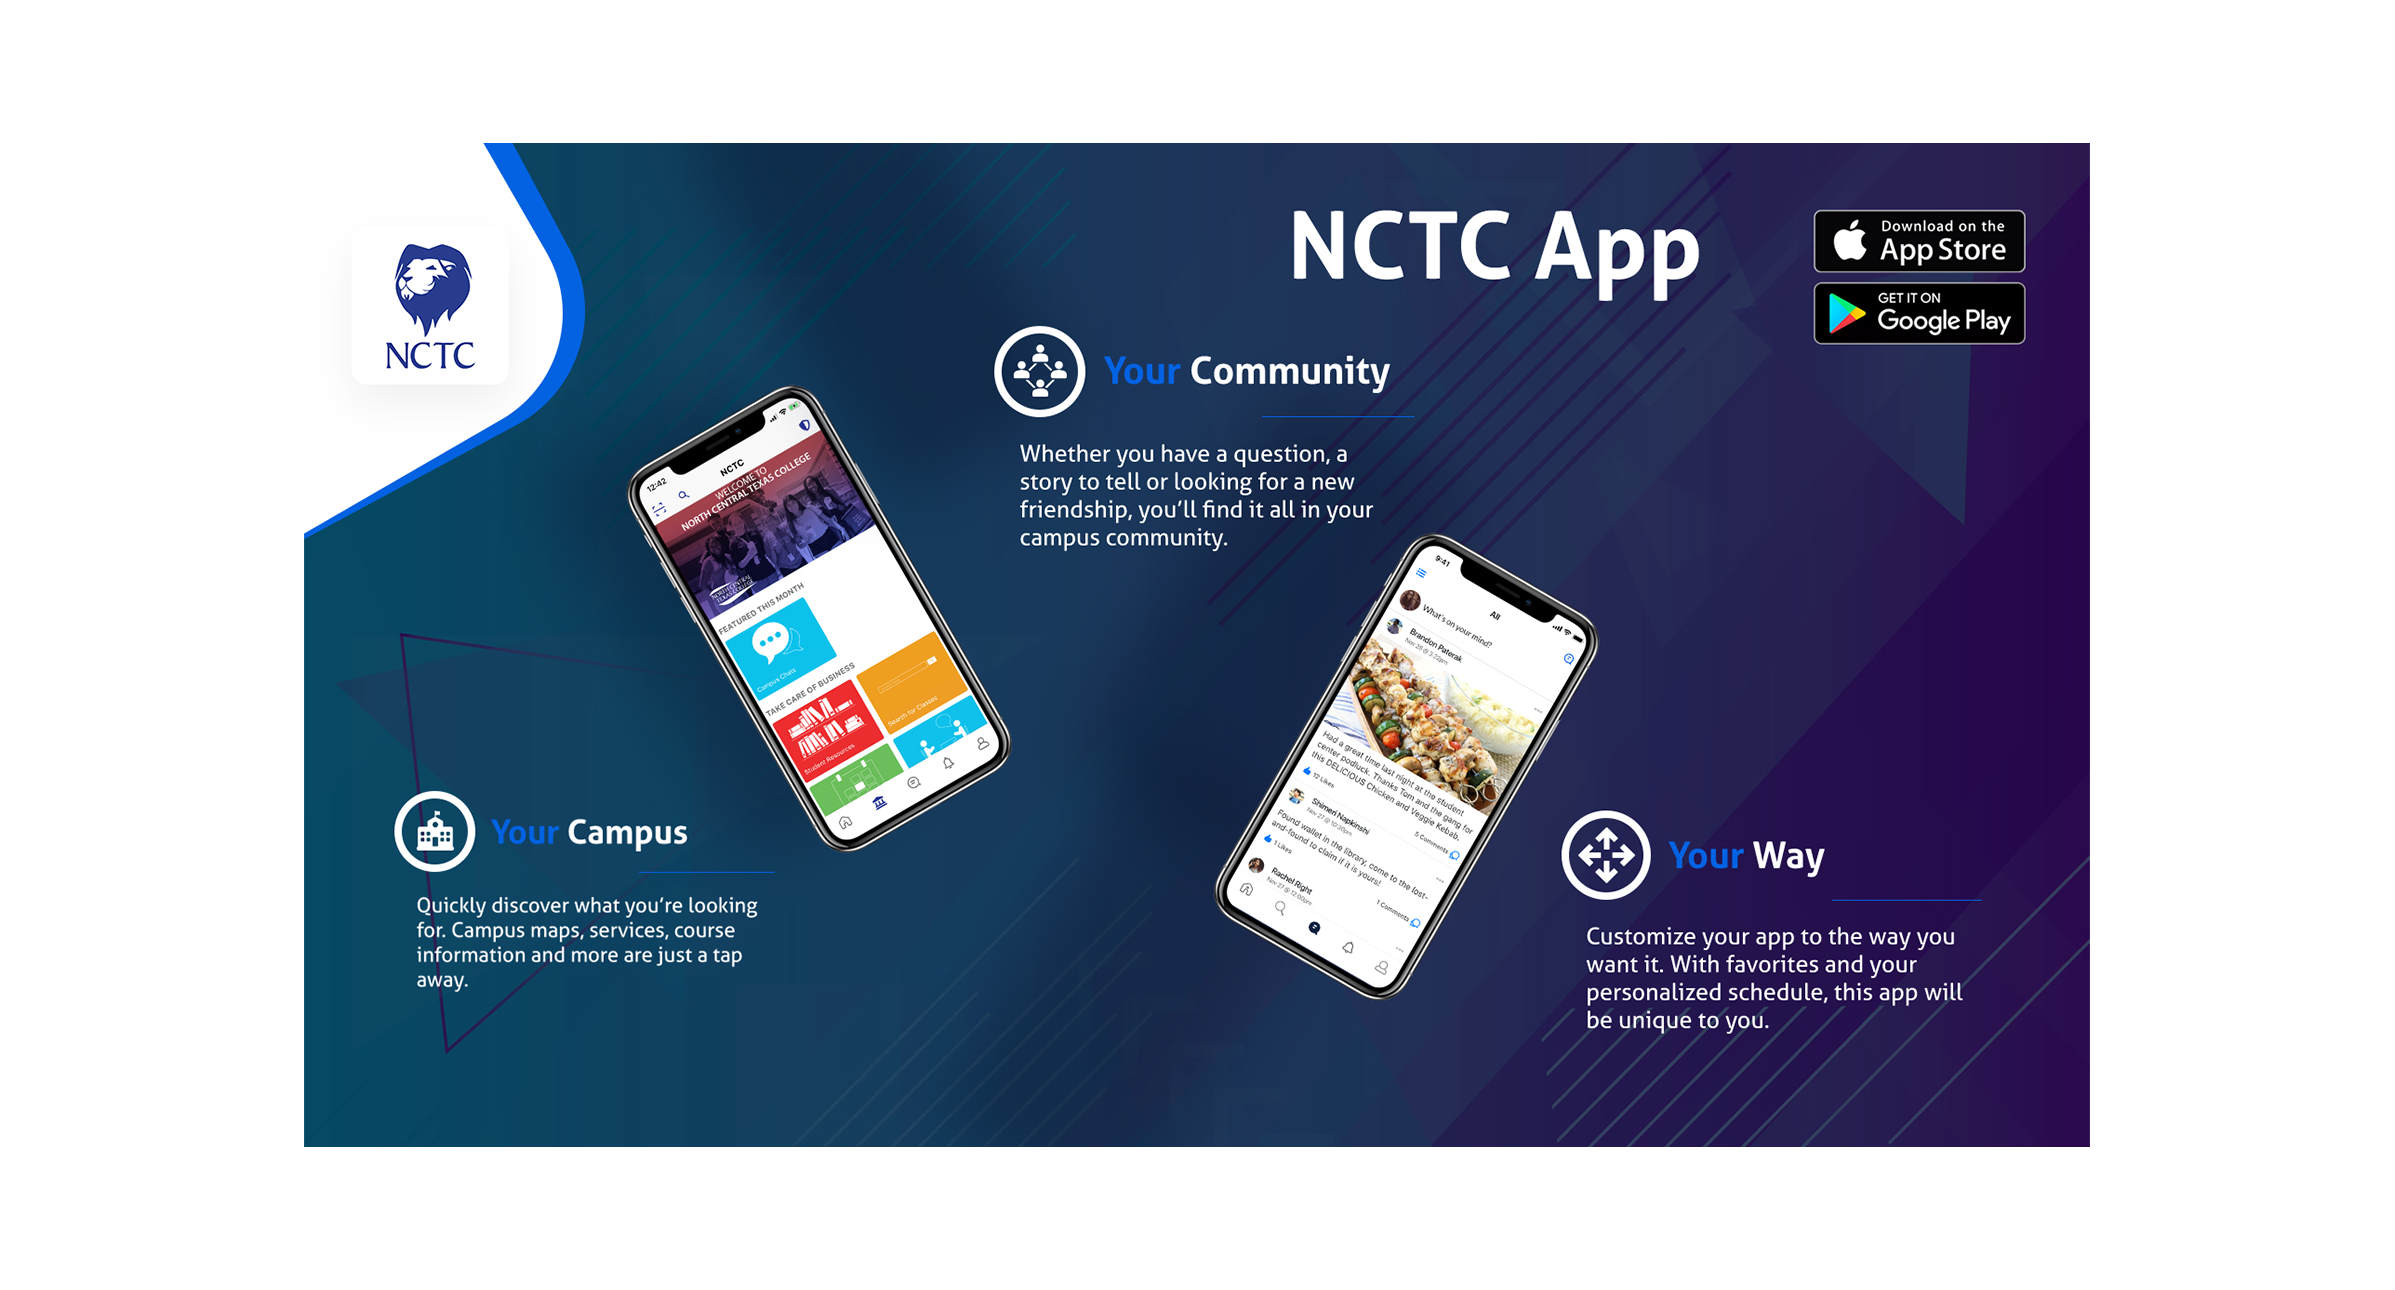 Get the NCTC App